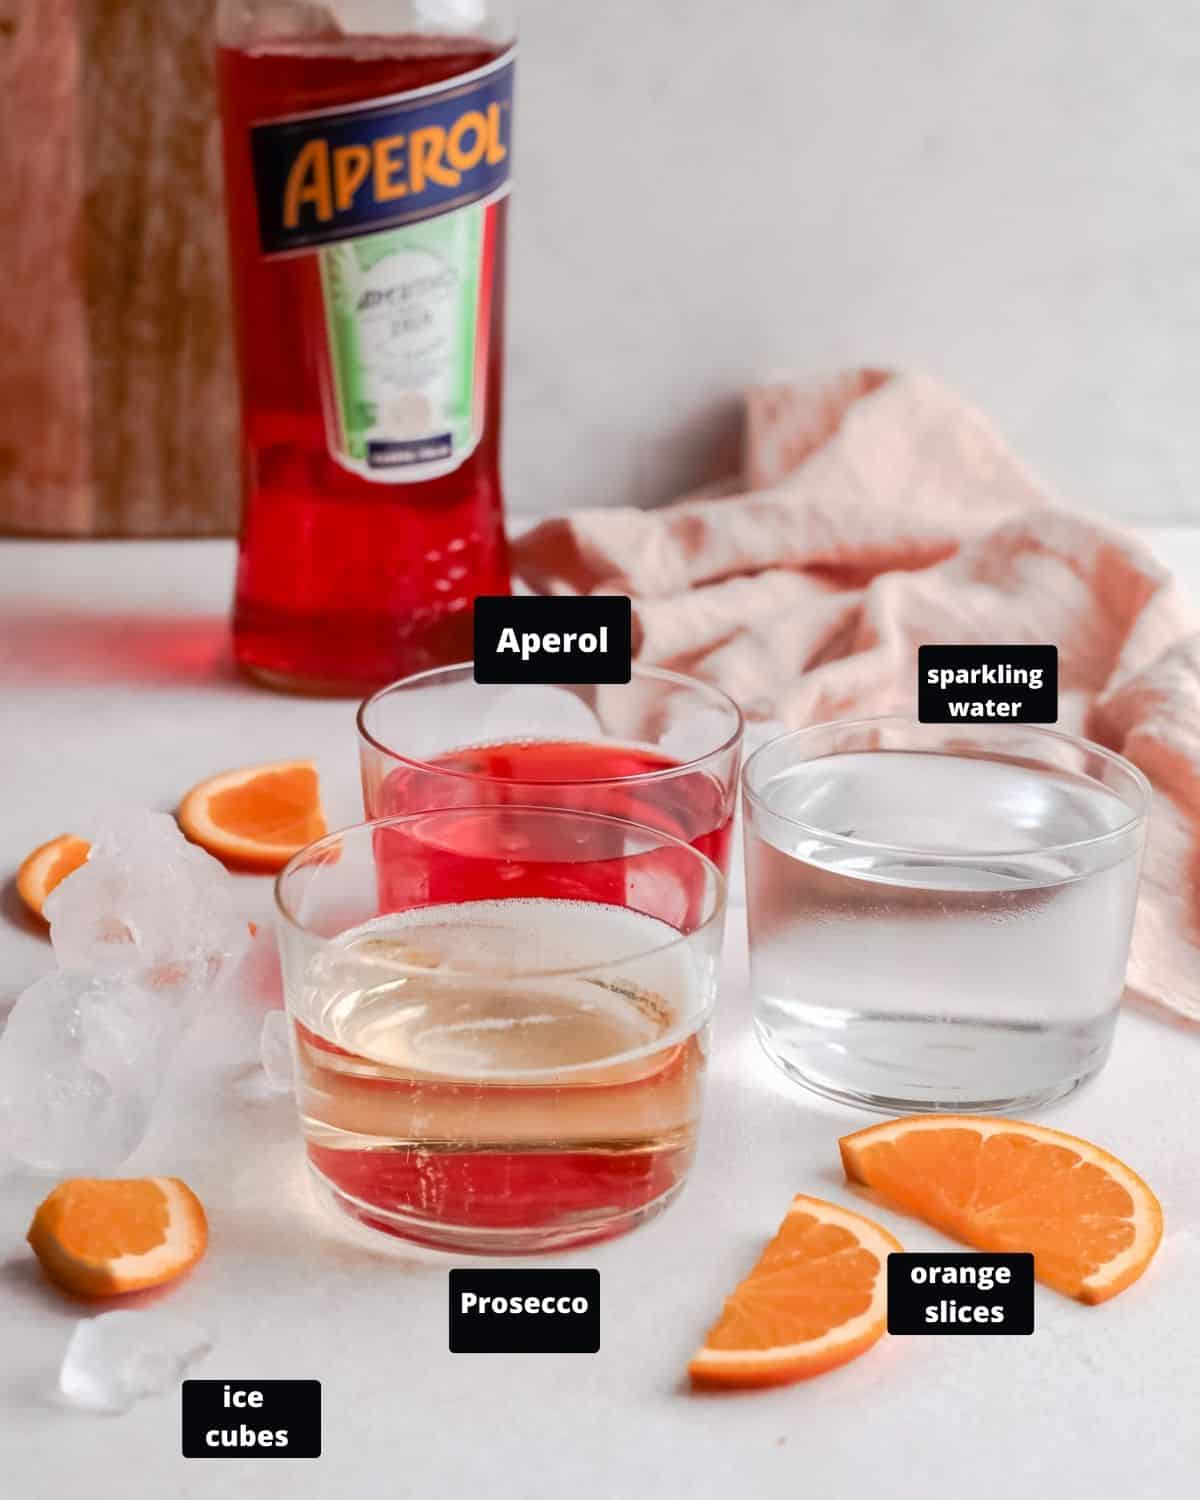 Ingredients to make aperol spritz, aperol, sparkling water, and proecco.